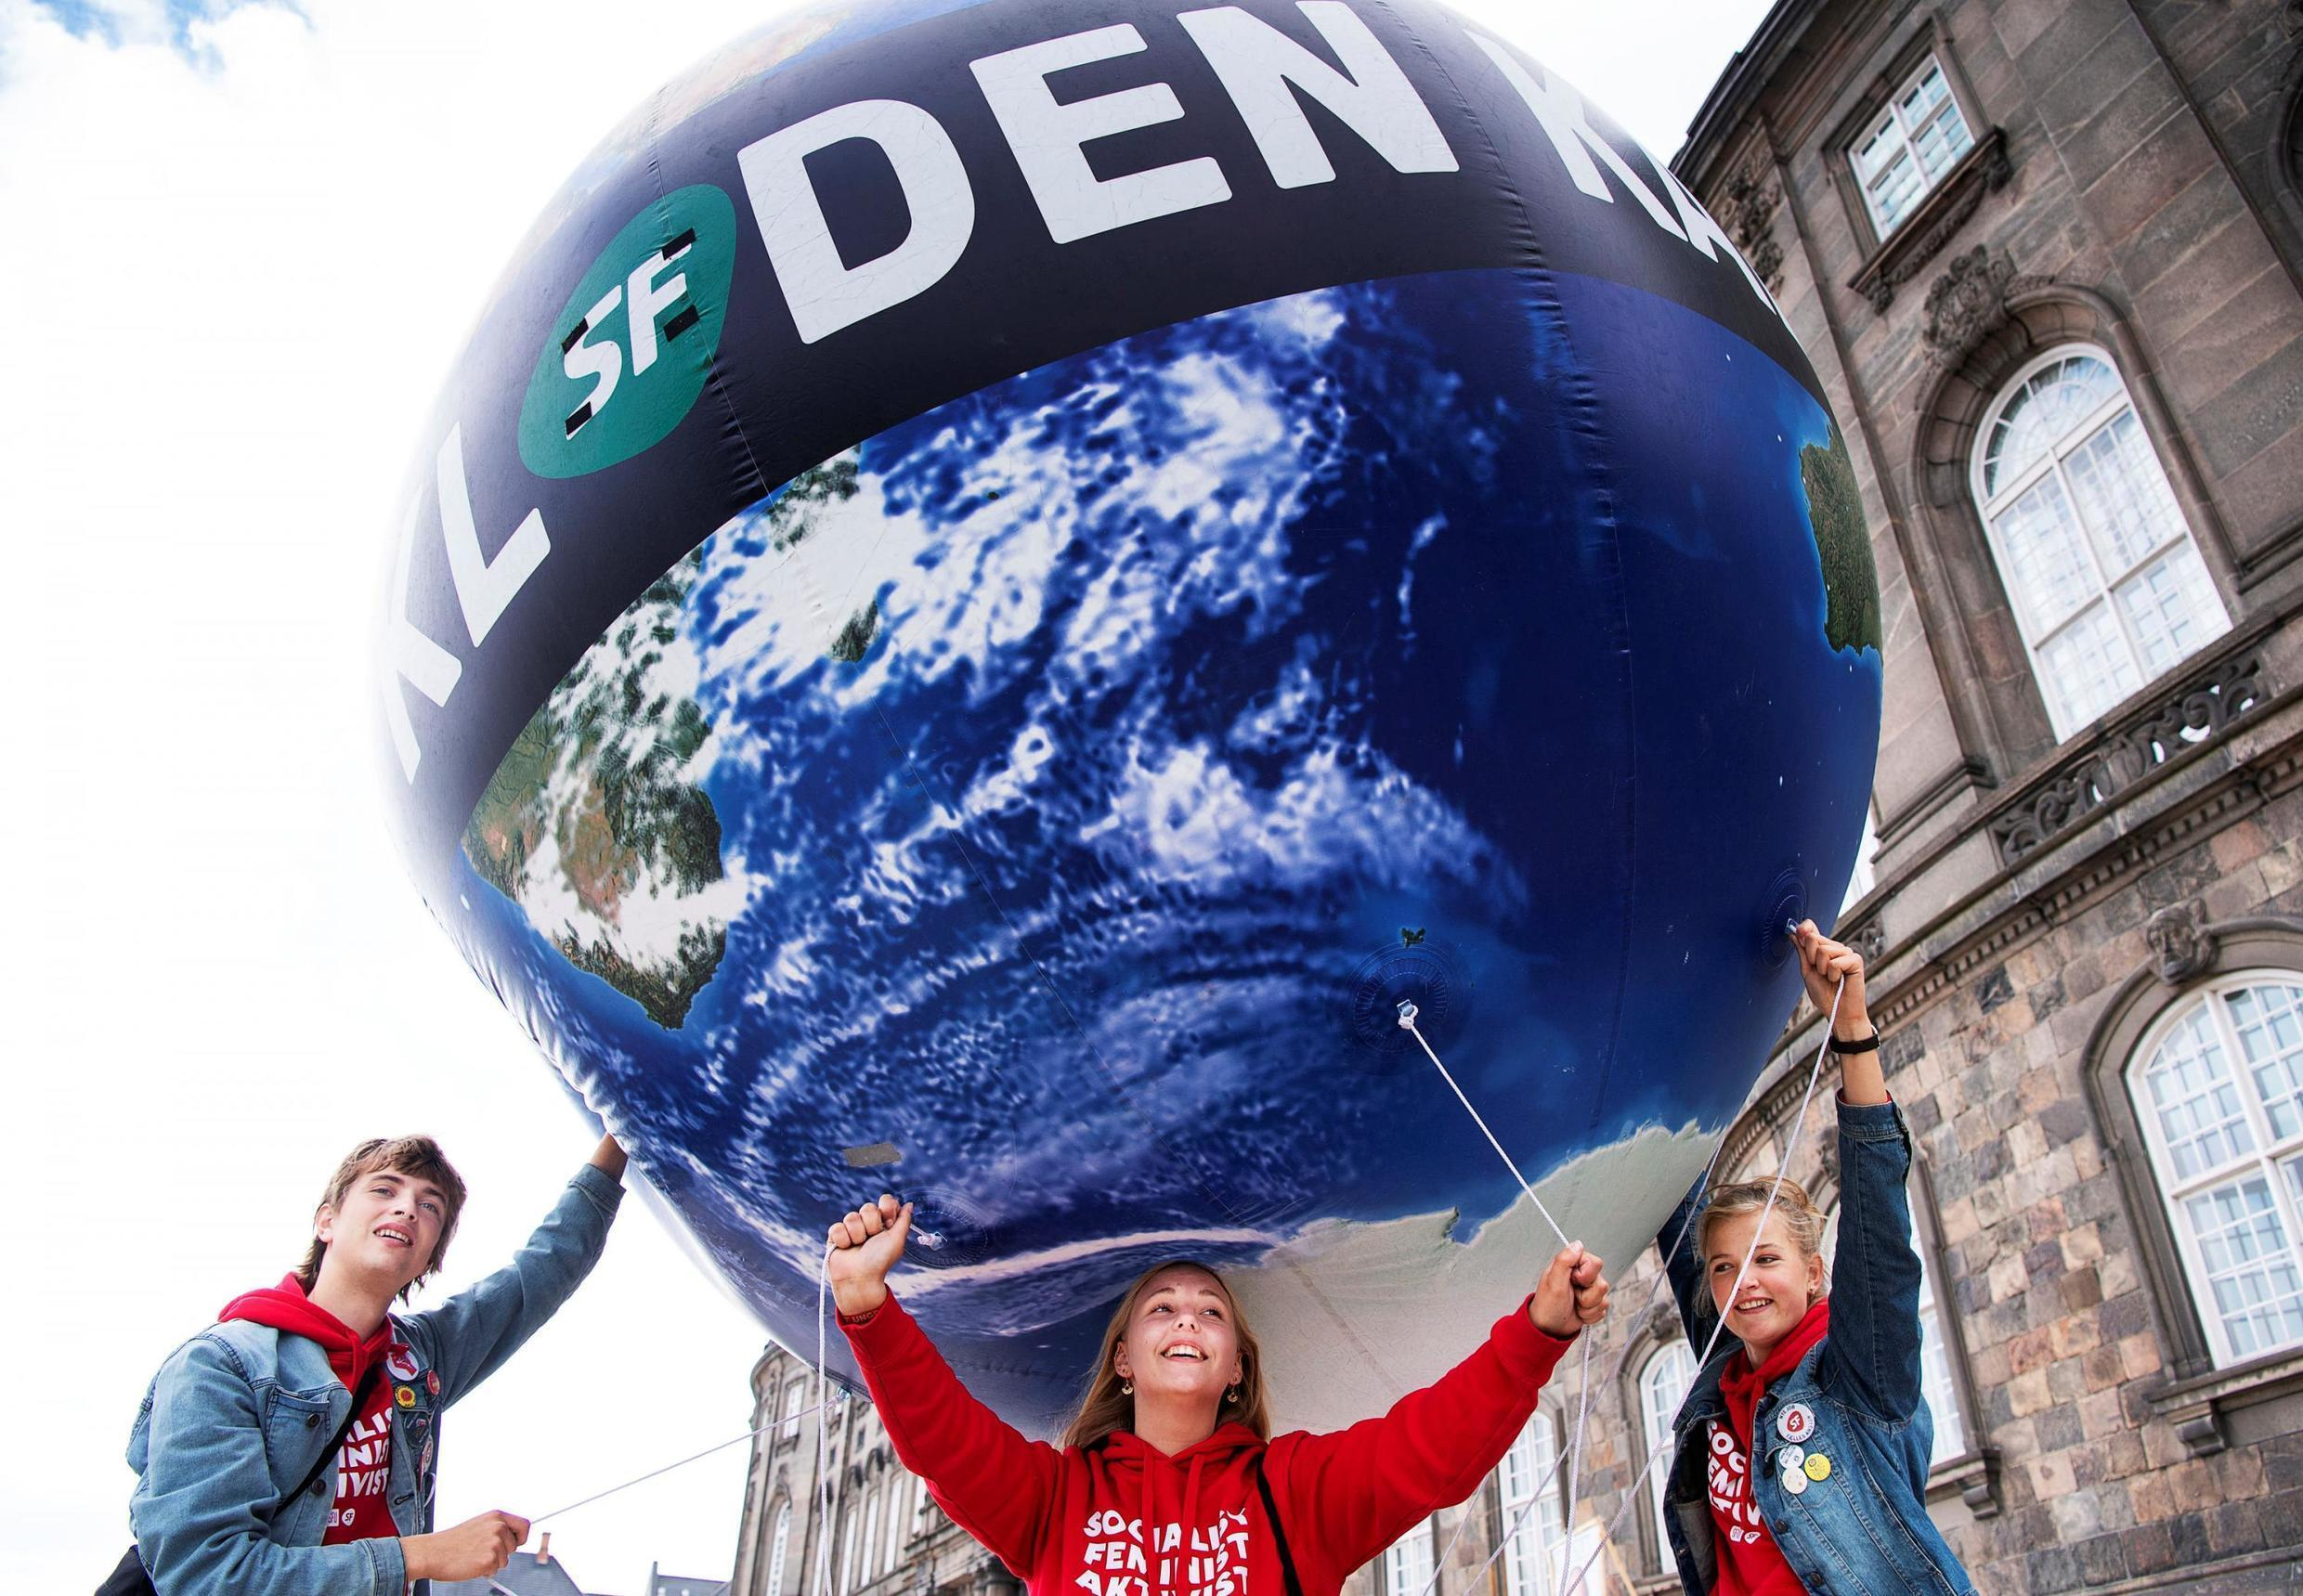 People attend the People's Climate March (Folkets Klimamarch) in front of Christiansborg Palace in Copenhagen, Denmark May 25, 2019.